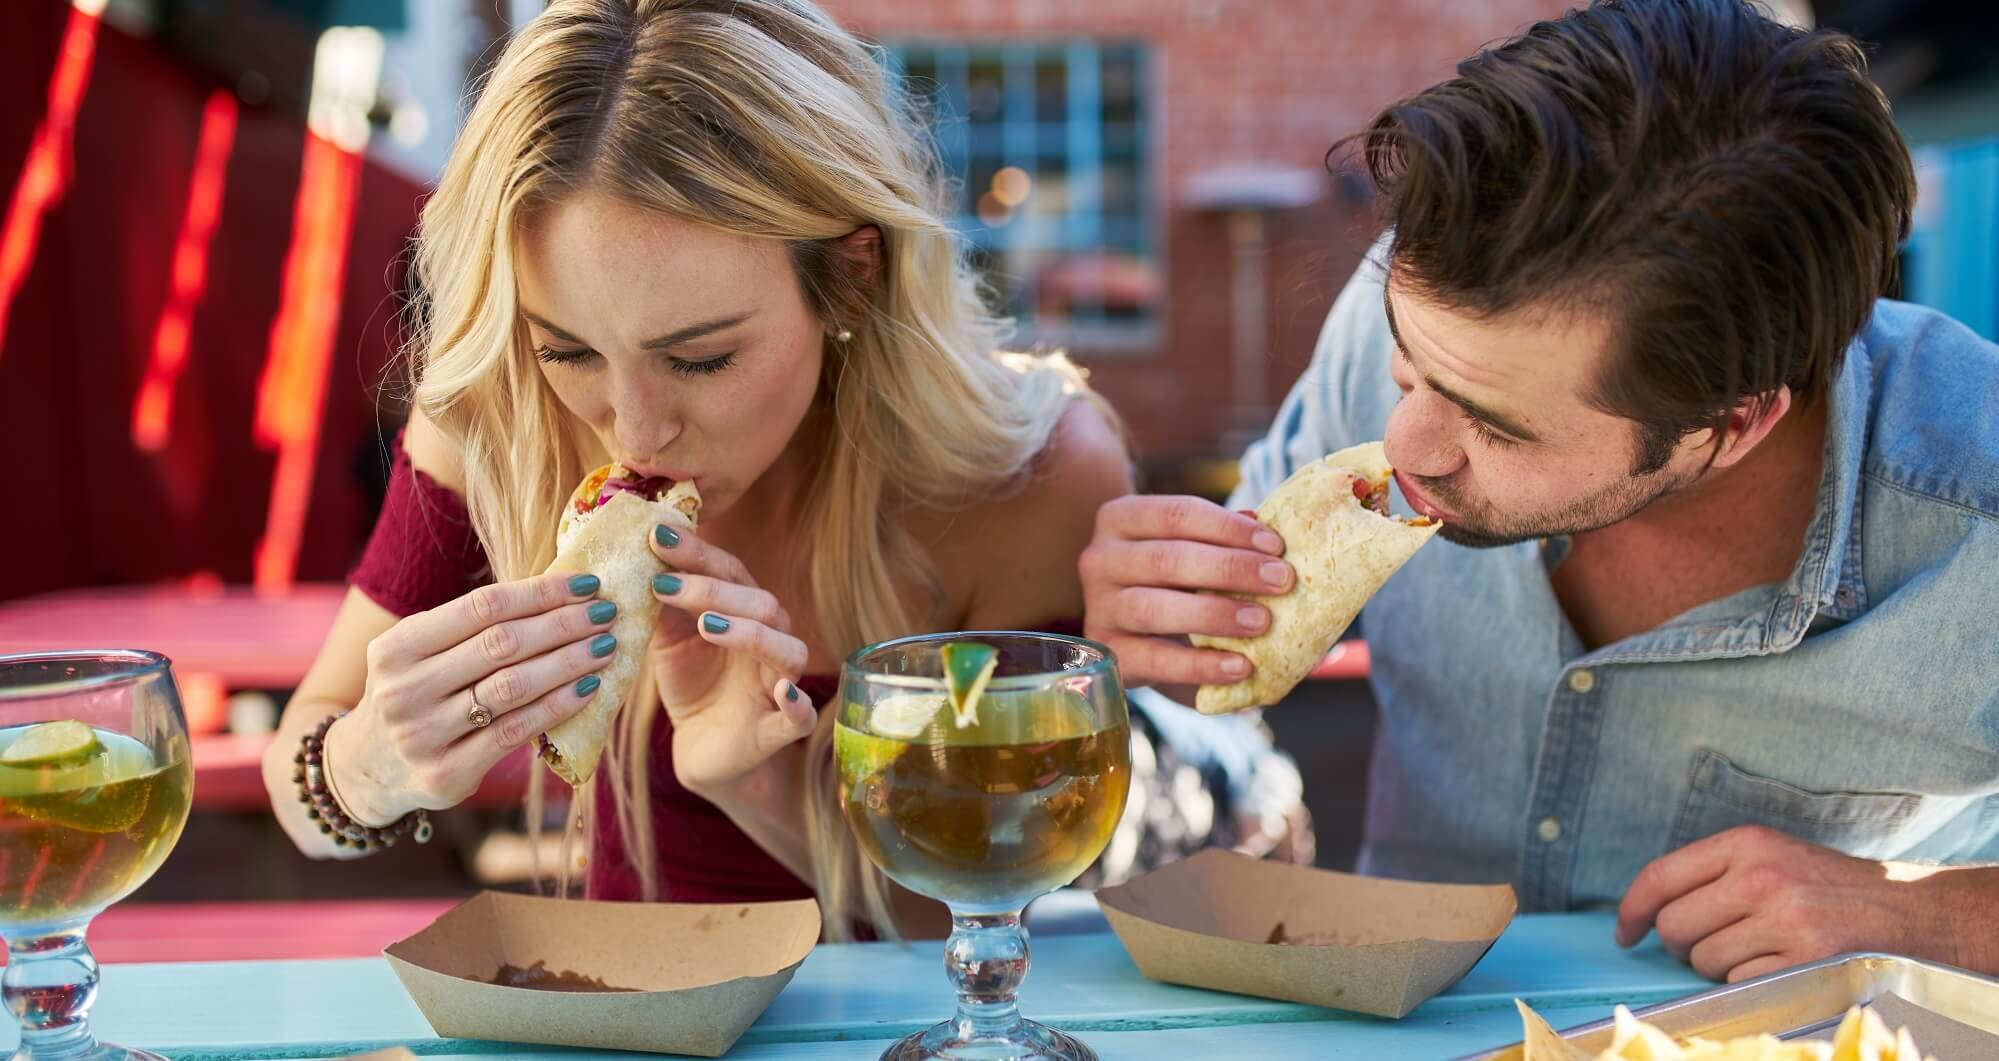 Couple eating tacos in East Nashville